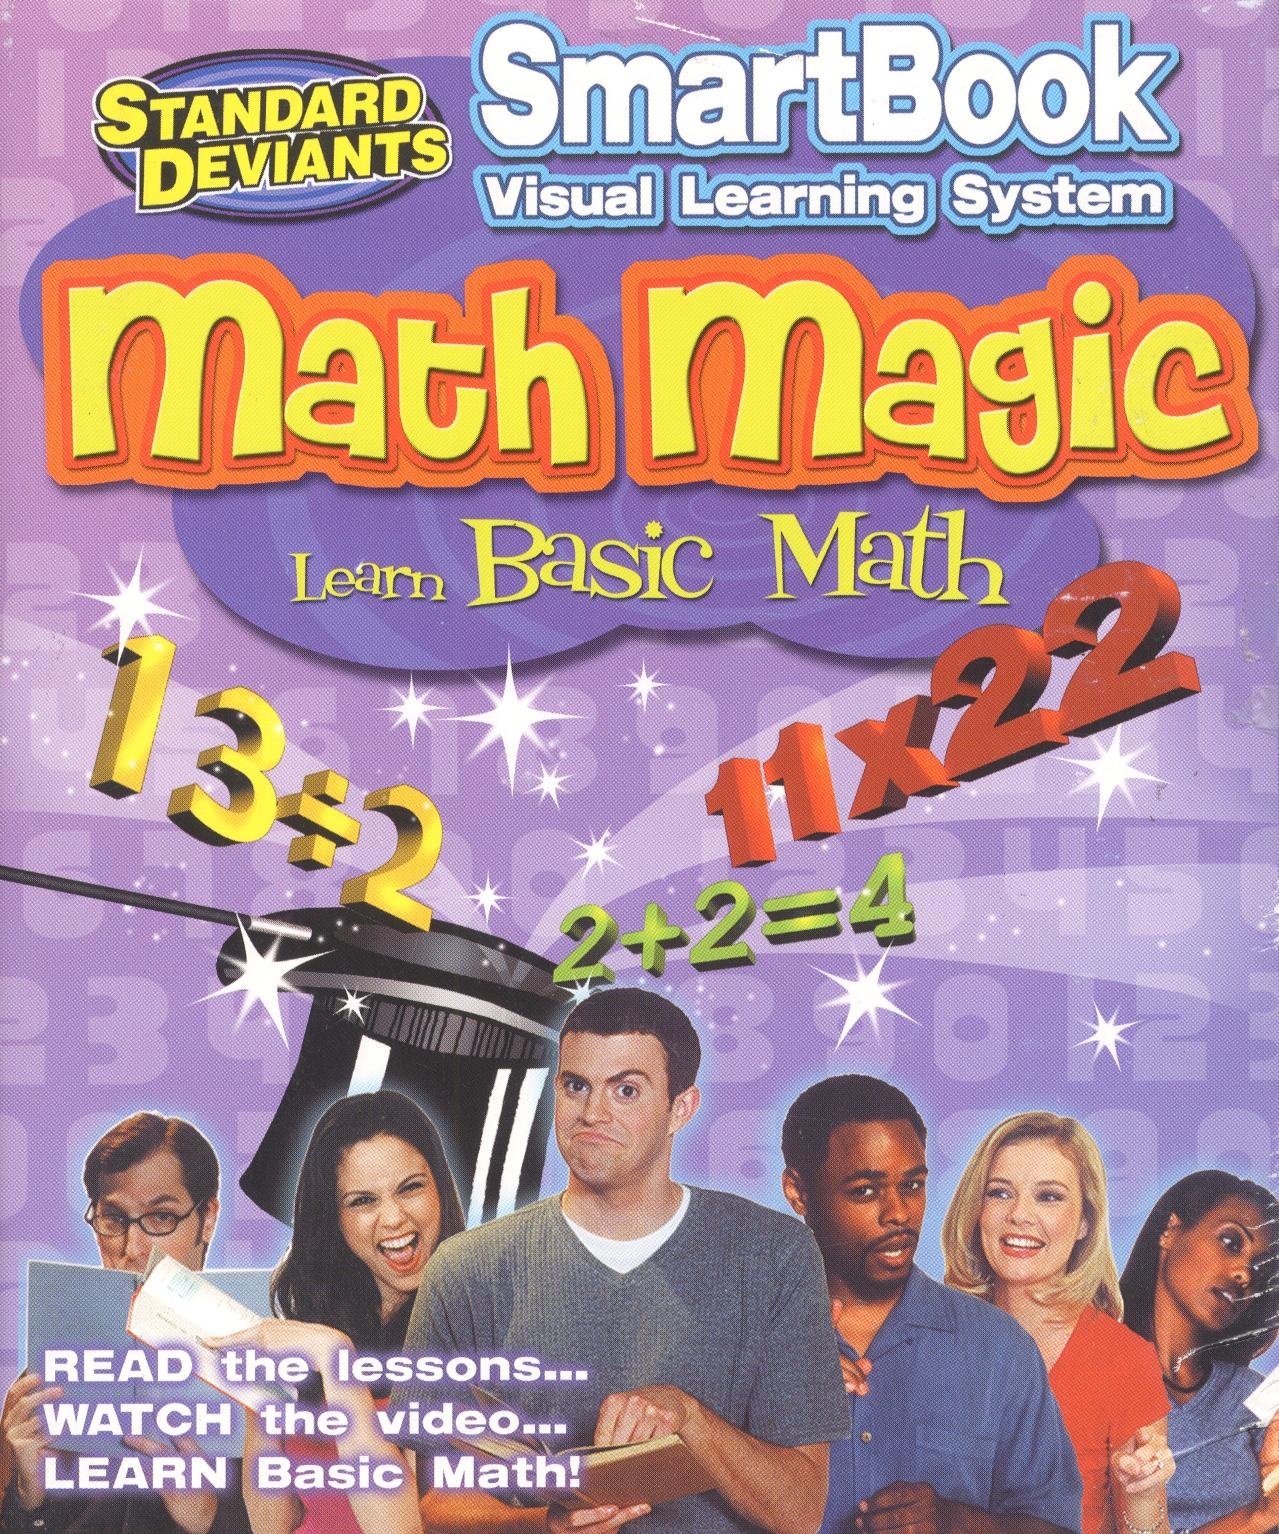 The Standard Deviants: Math Magic - Learn Basic Math